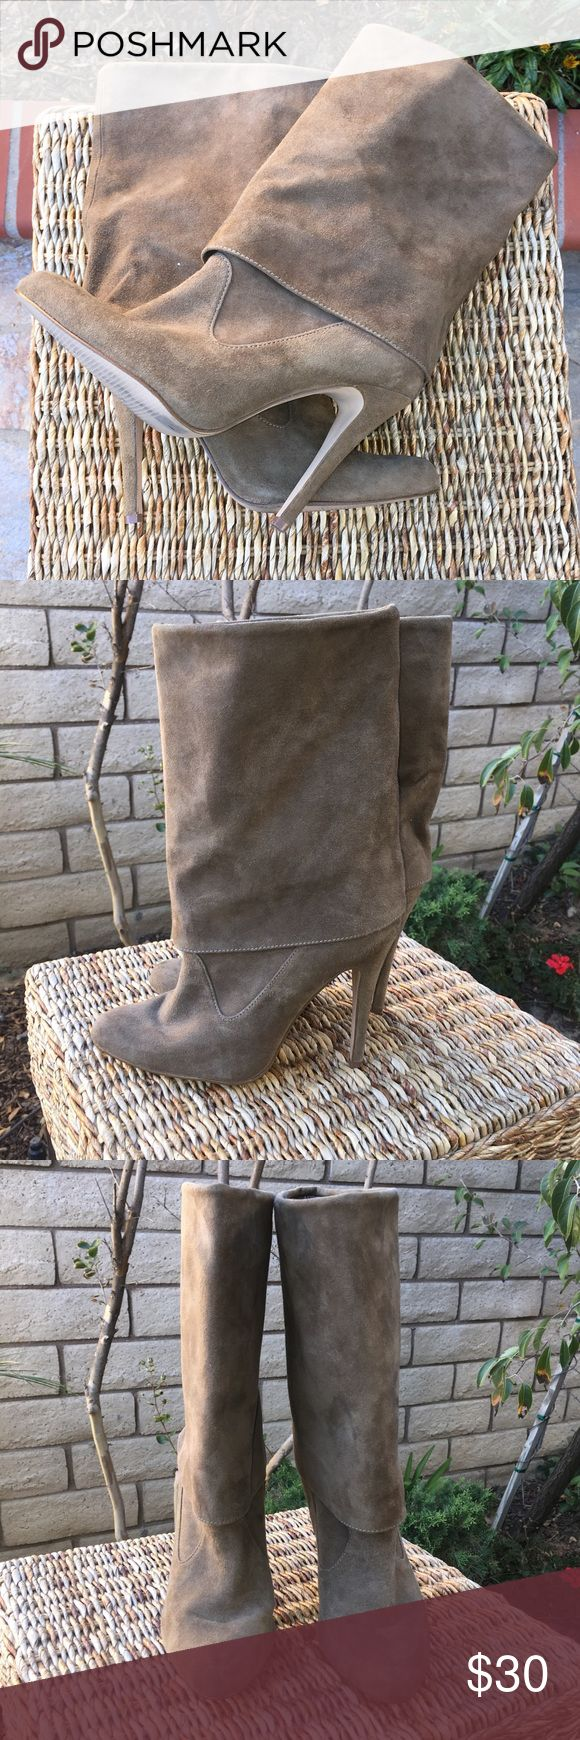 Colin Stuart Beautiful suede boots. That has a fold-down look in great condition. 3 inch heel. Gently worn :-) Colin Stuart Shoes Heeled Boots